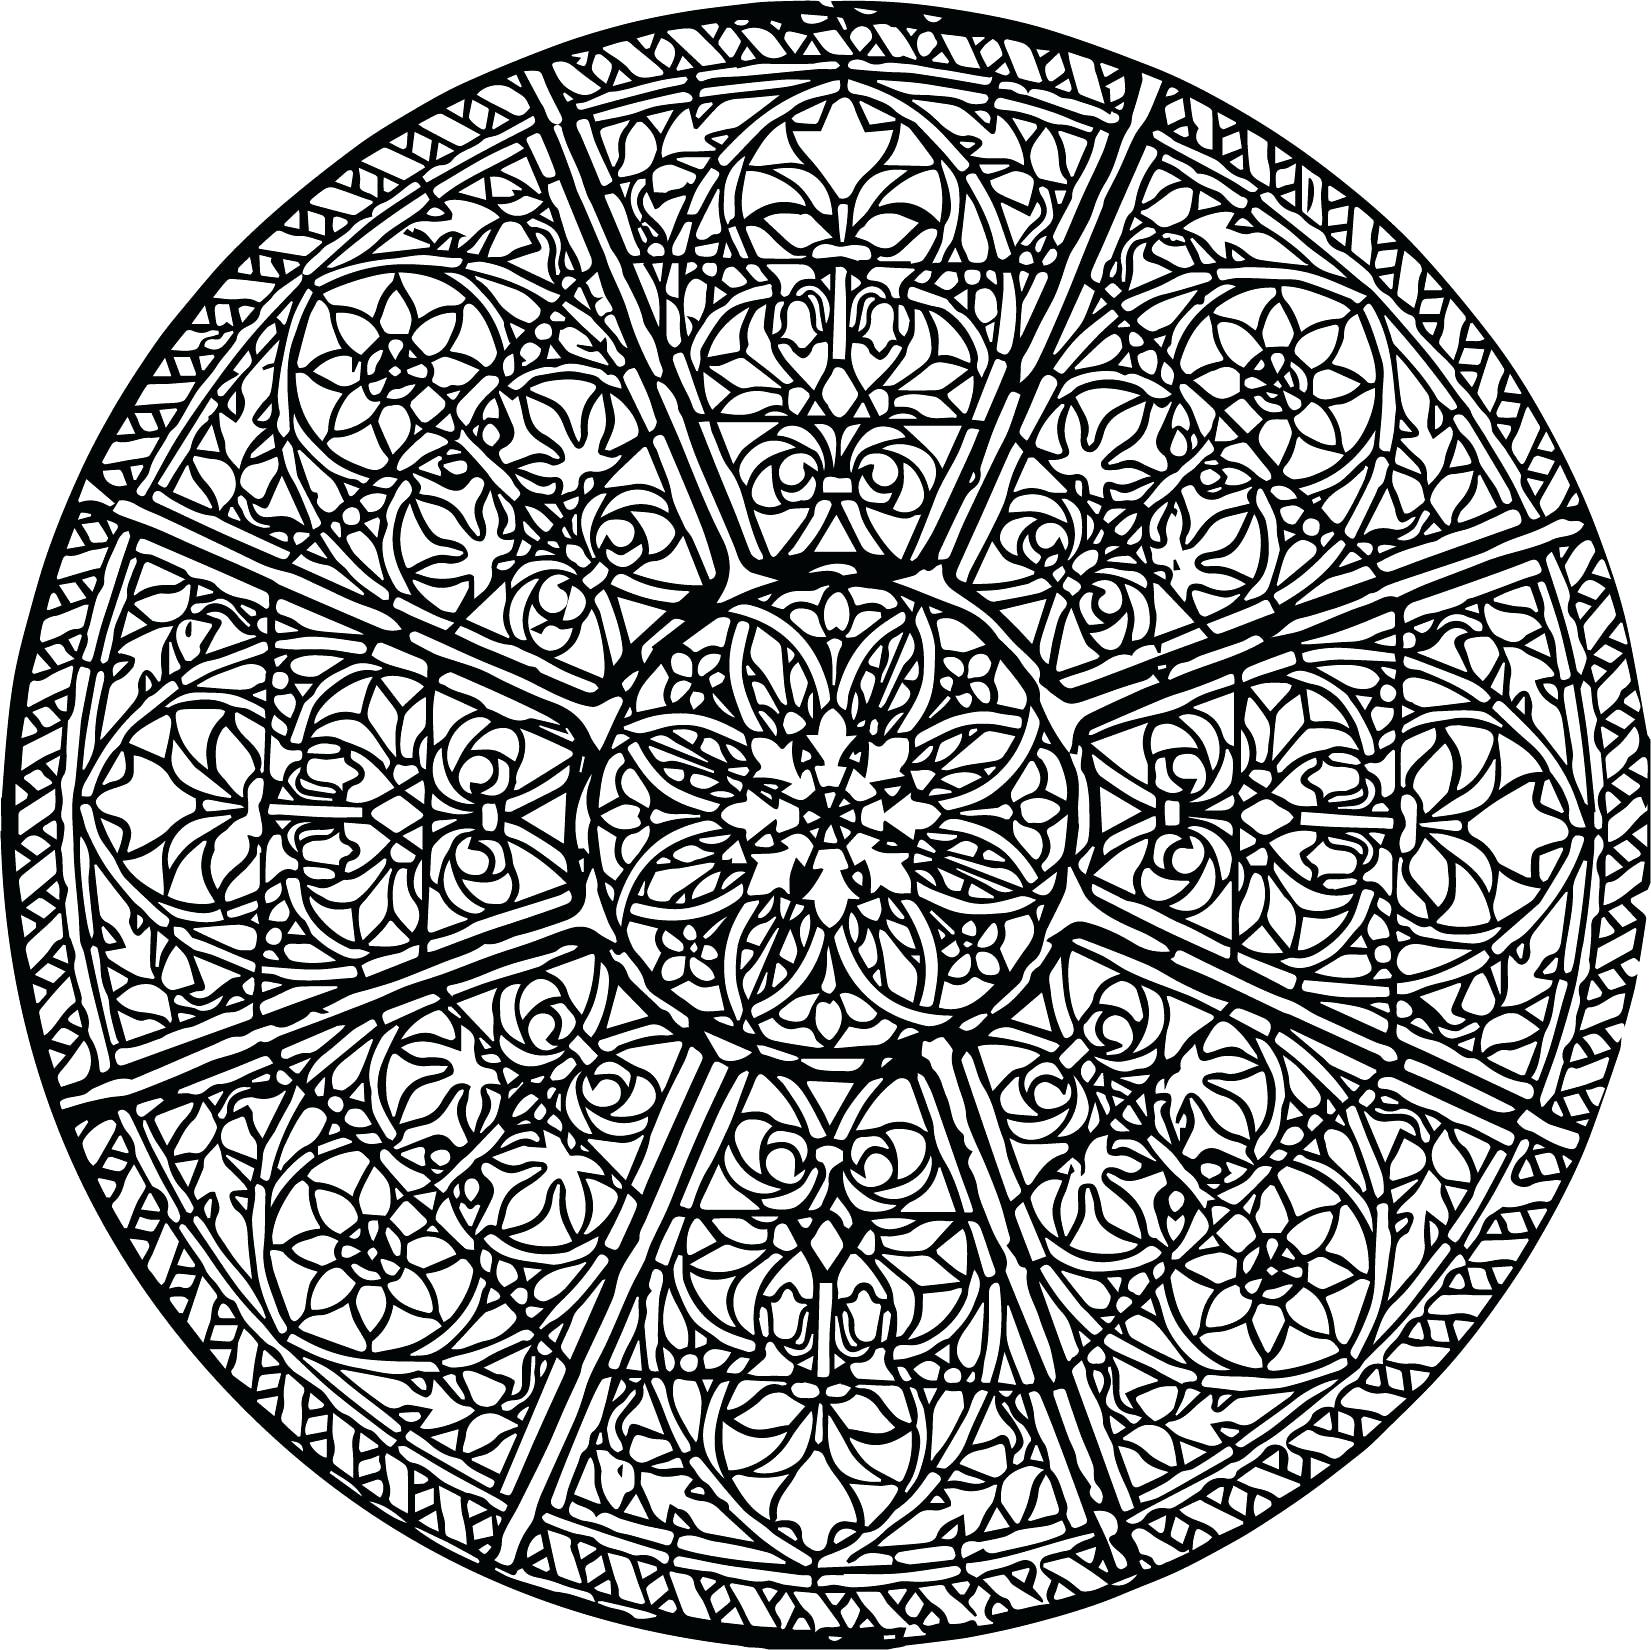 1651x1650 Coloring Stained Glass Window Coloring Pages Circular Church Page